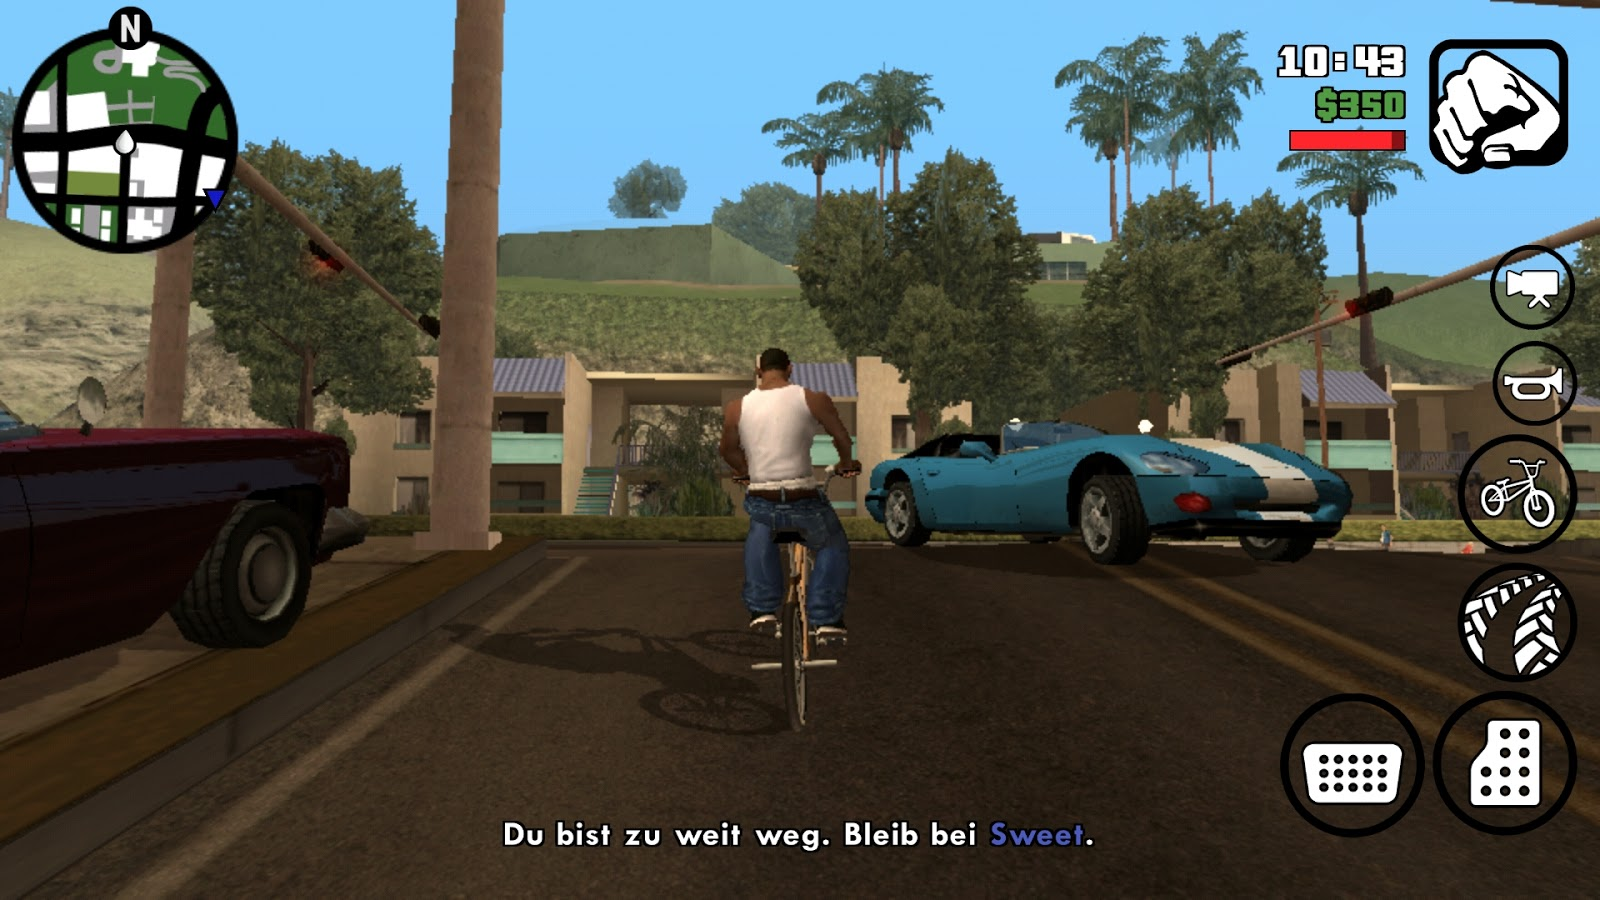 Gta san andreas v. I. S. A 2 v1. 1 android gta v patch mod.